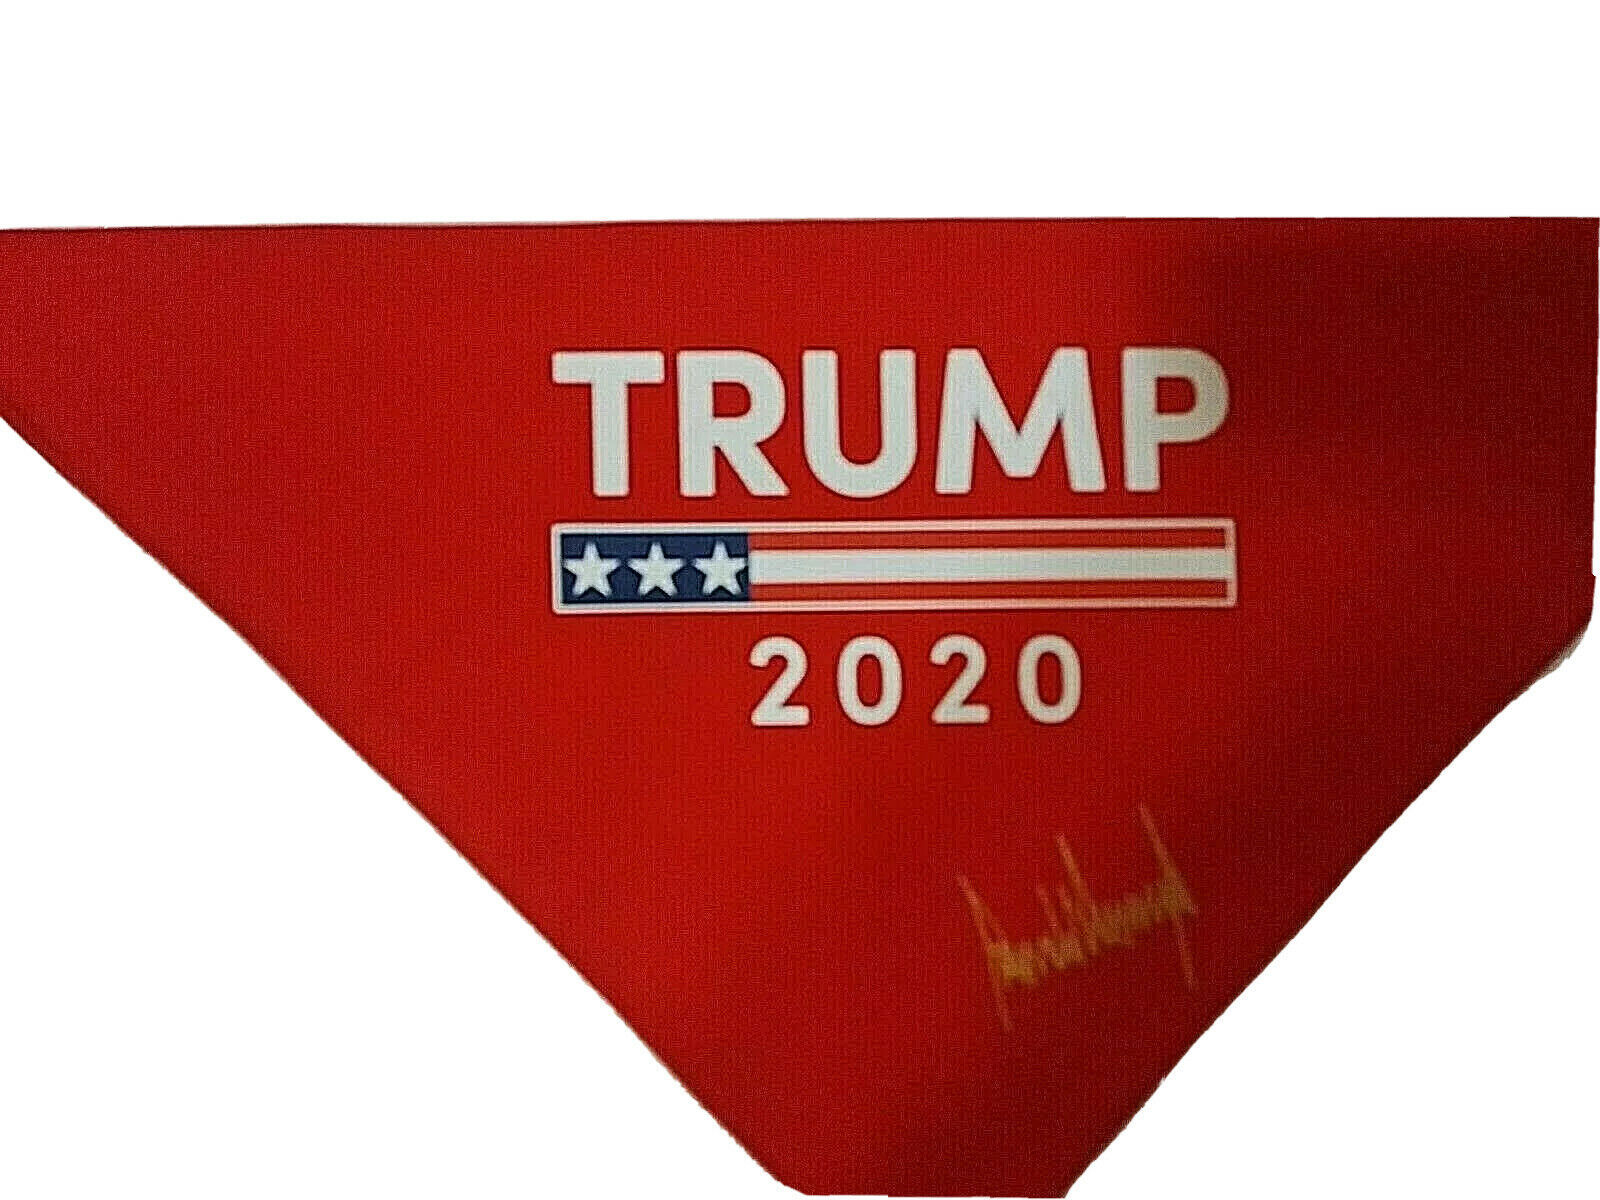 Primary image for Buy1 Get1 Free Trump 2020 Face Mask Bandana MAGA Keep America Great Red Bandana